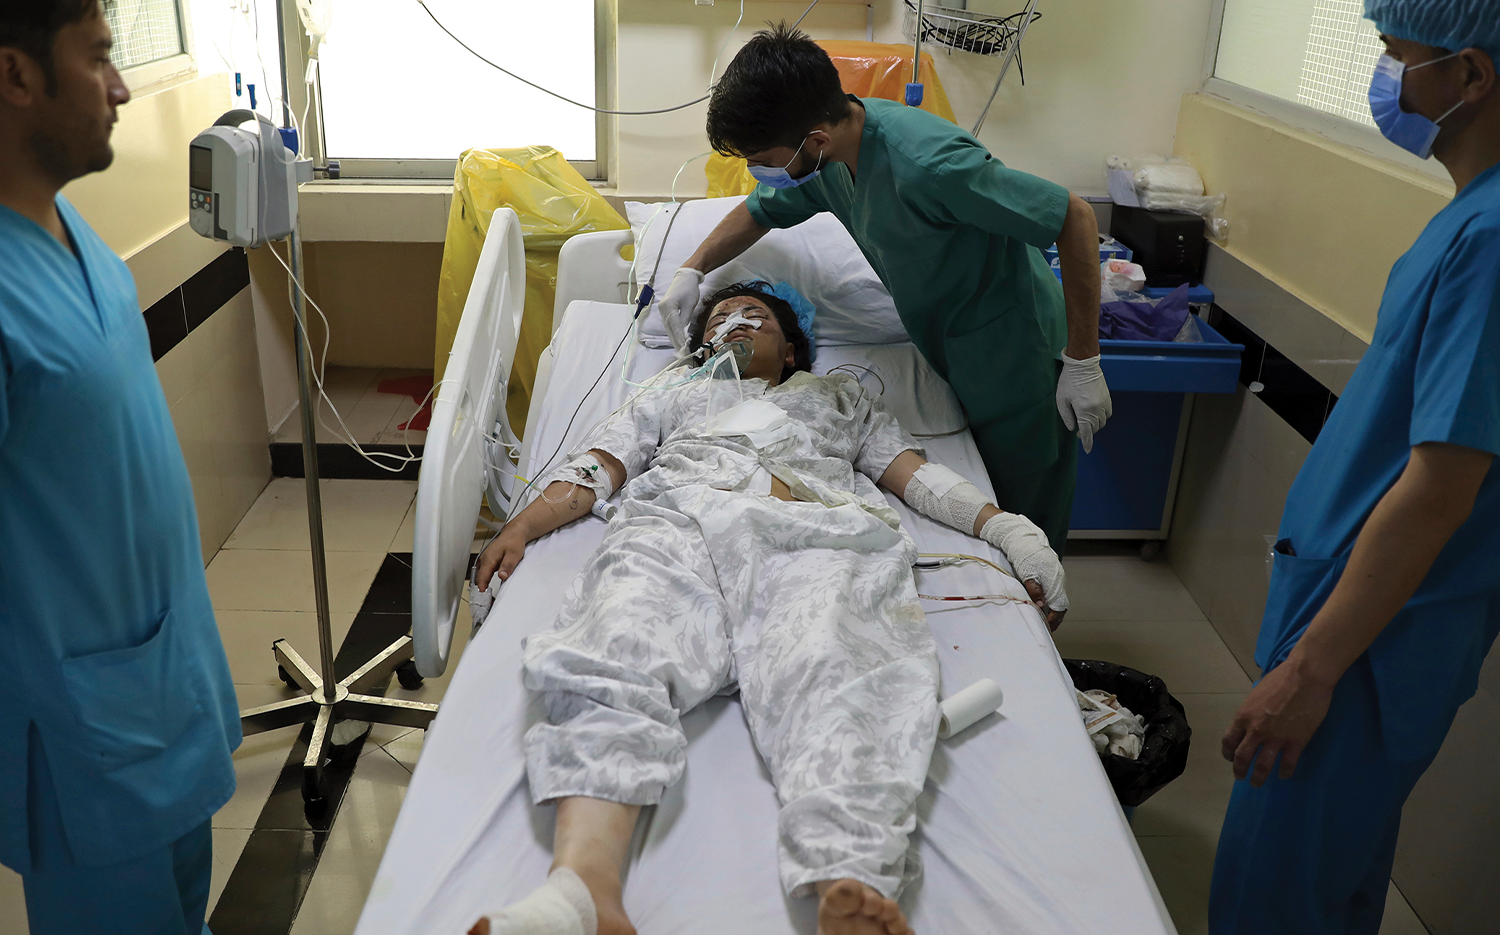 An Afghan student is treated at a hospital after she  was injured by deadly bombings outside a school in Kabul on May 8.